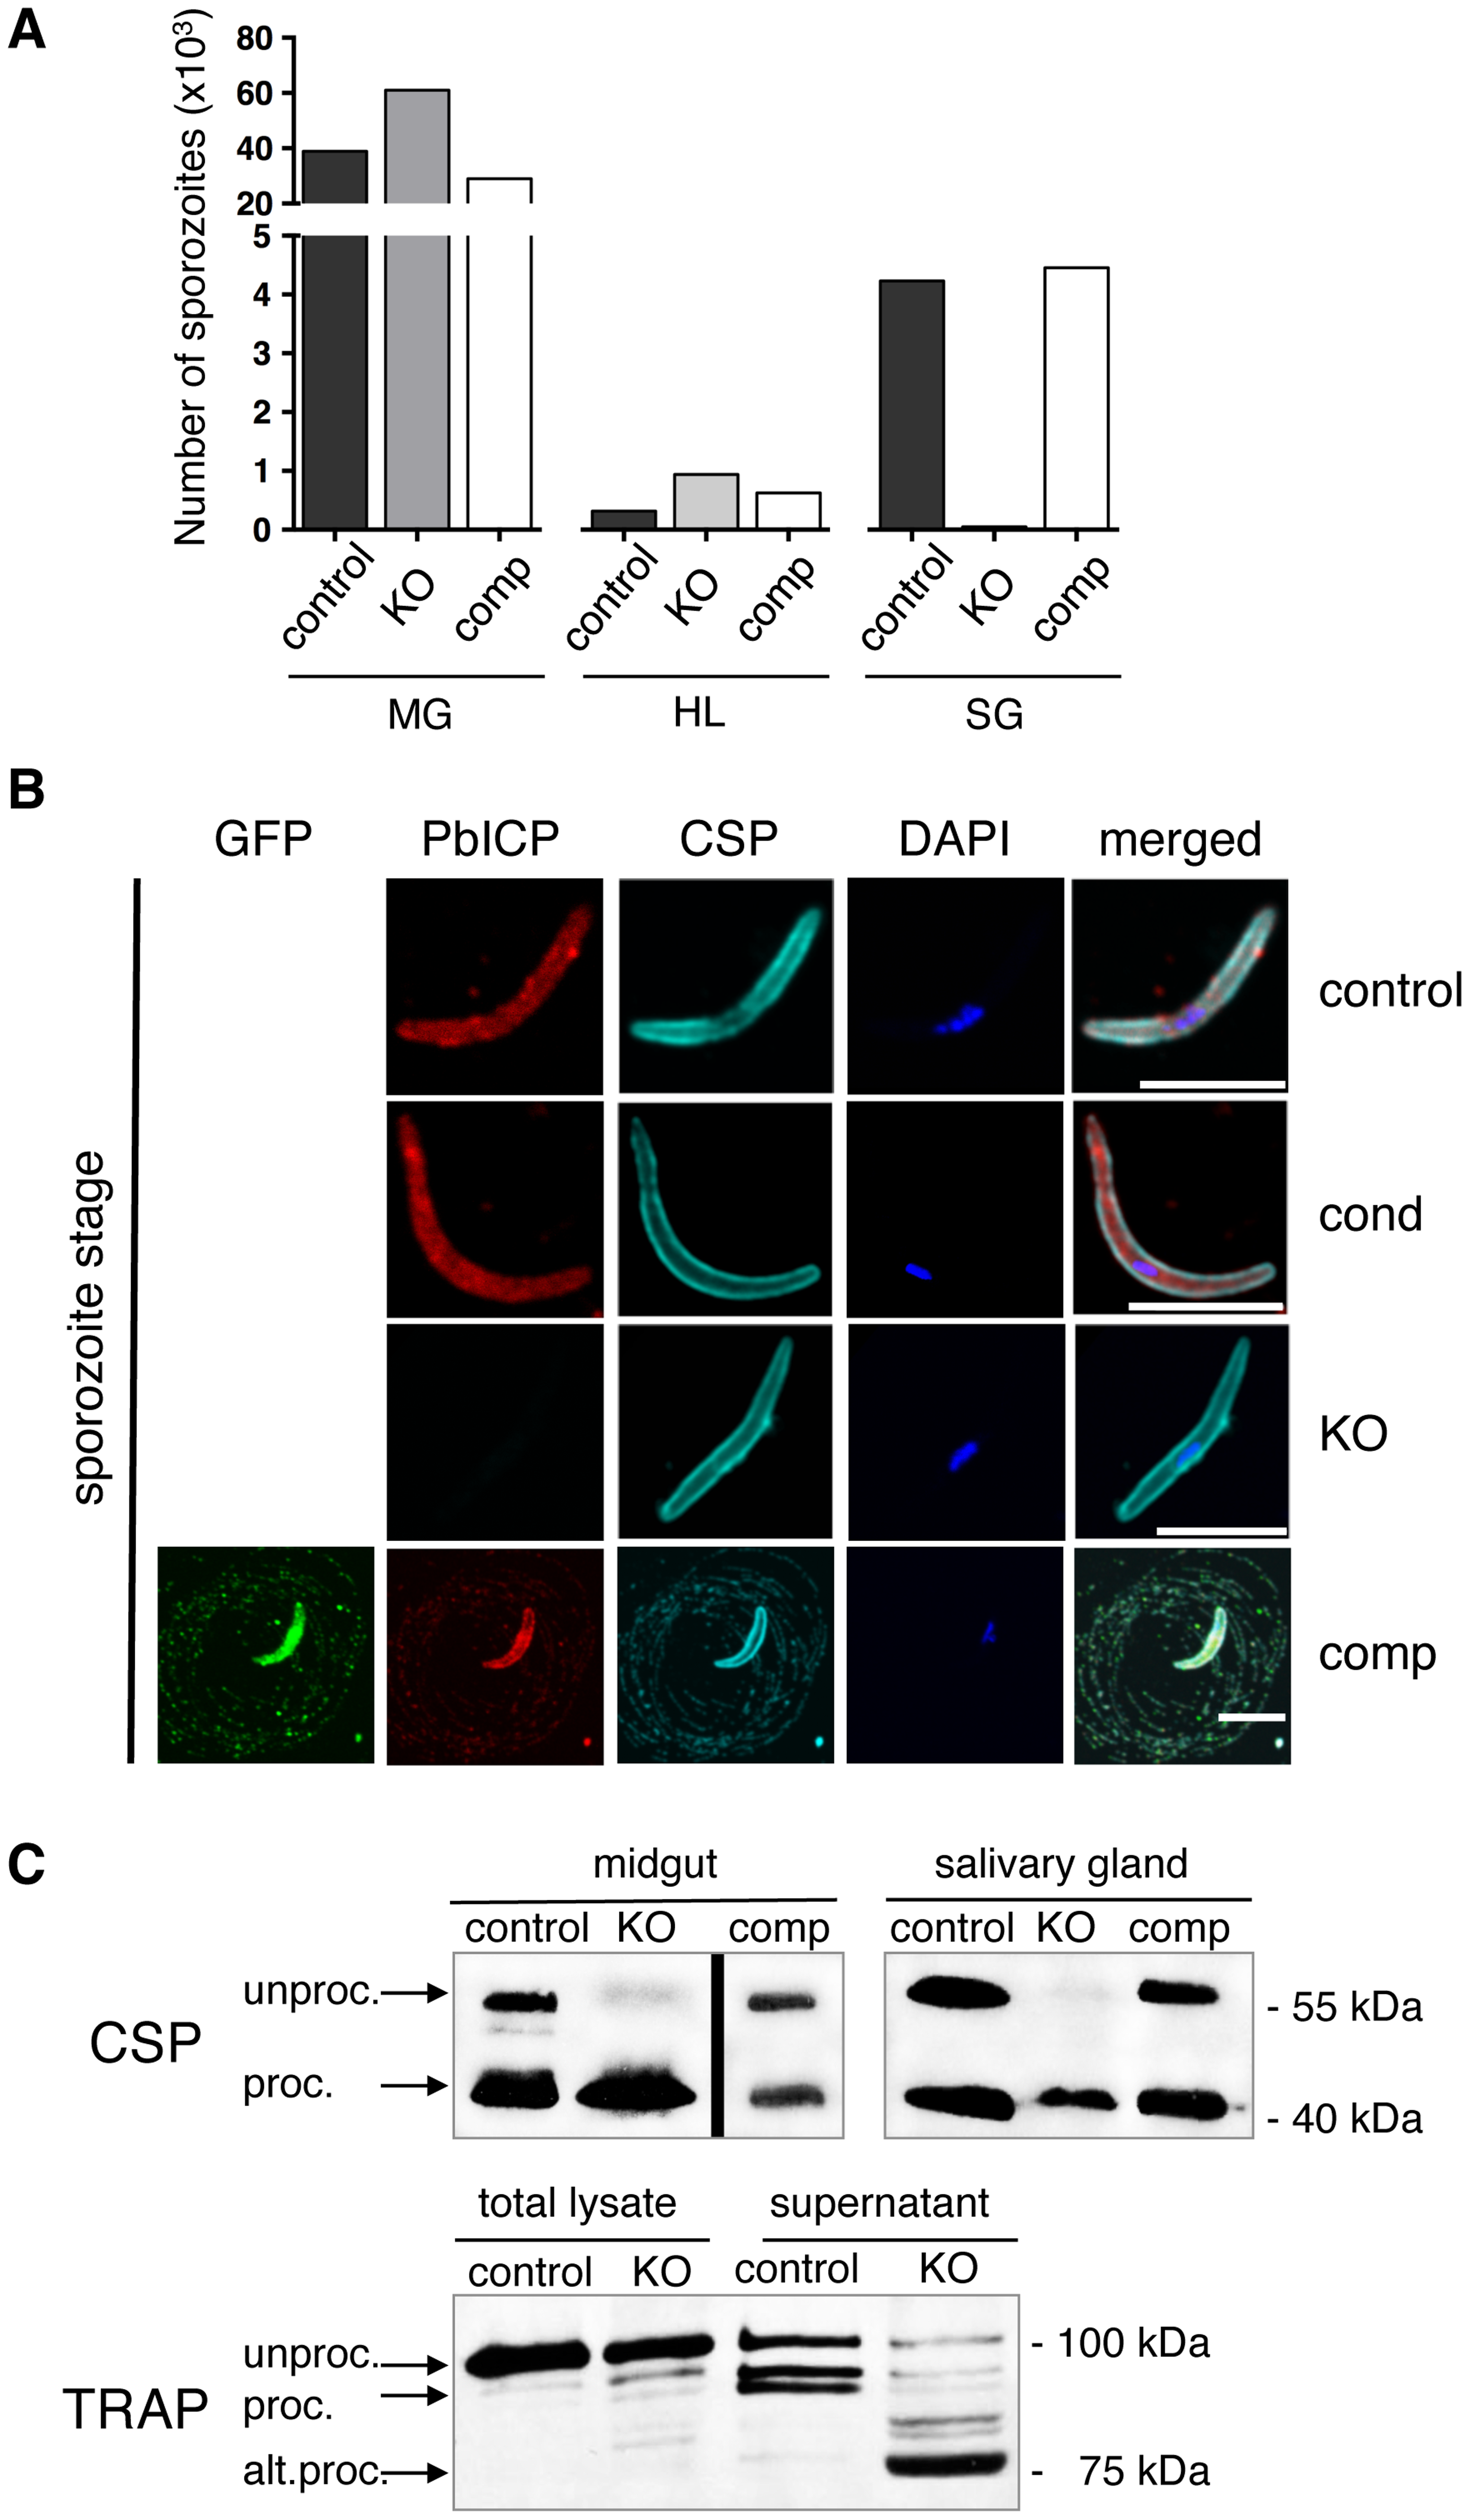 PbICP is essential for mosquito stage development and regulates CSP and TRAP processing by midgut and salivary gland sporozoites.